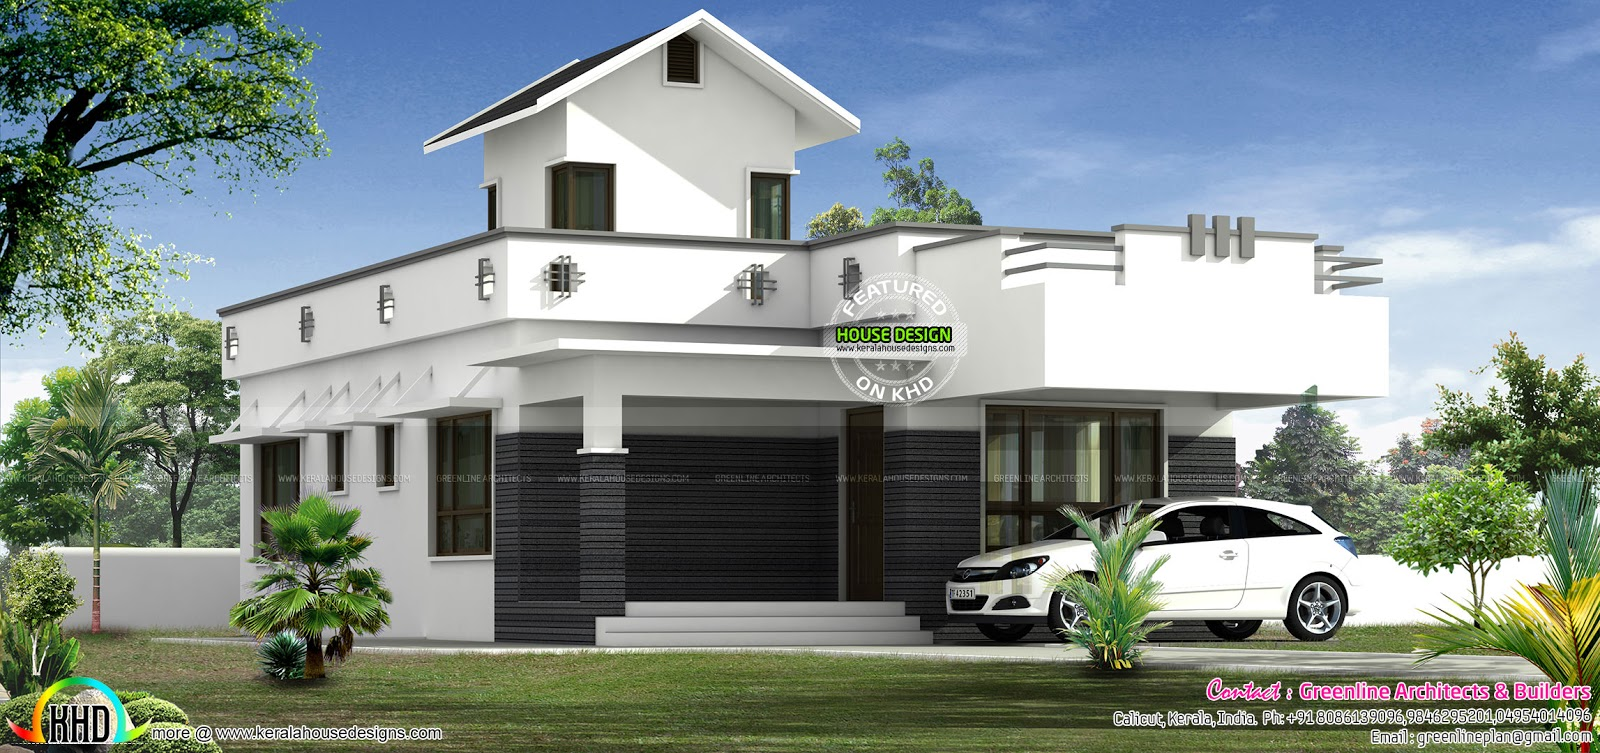 1000 sq ft 15 lakhs budget home kerala home design and for Kerala home design 1000 sq feet